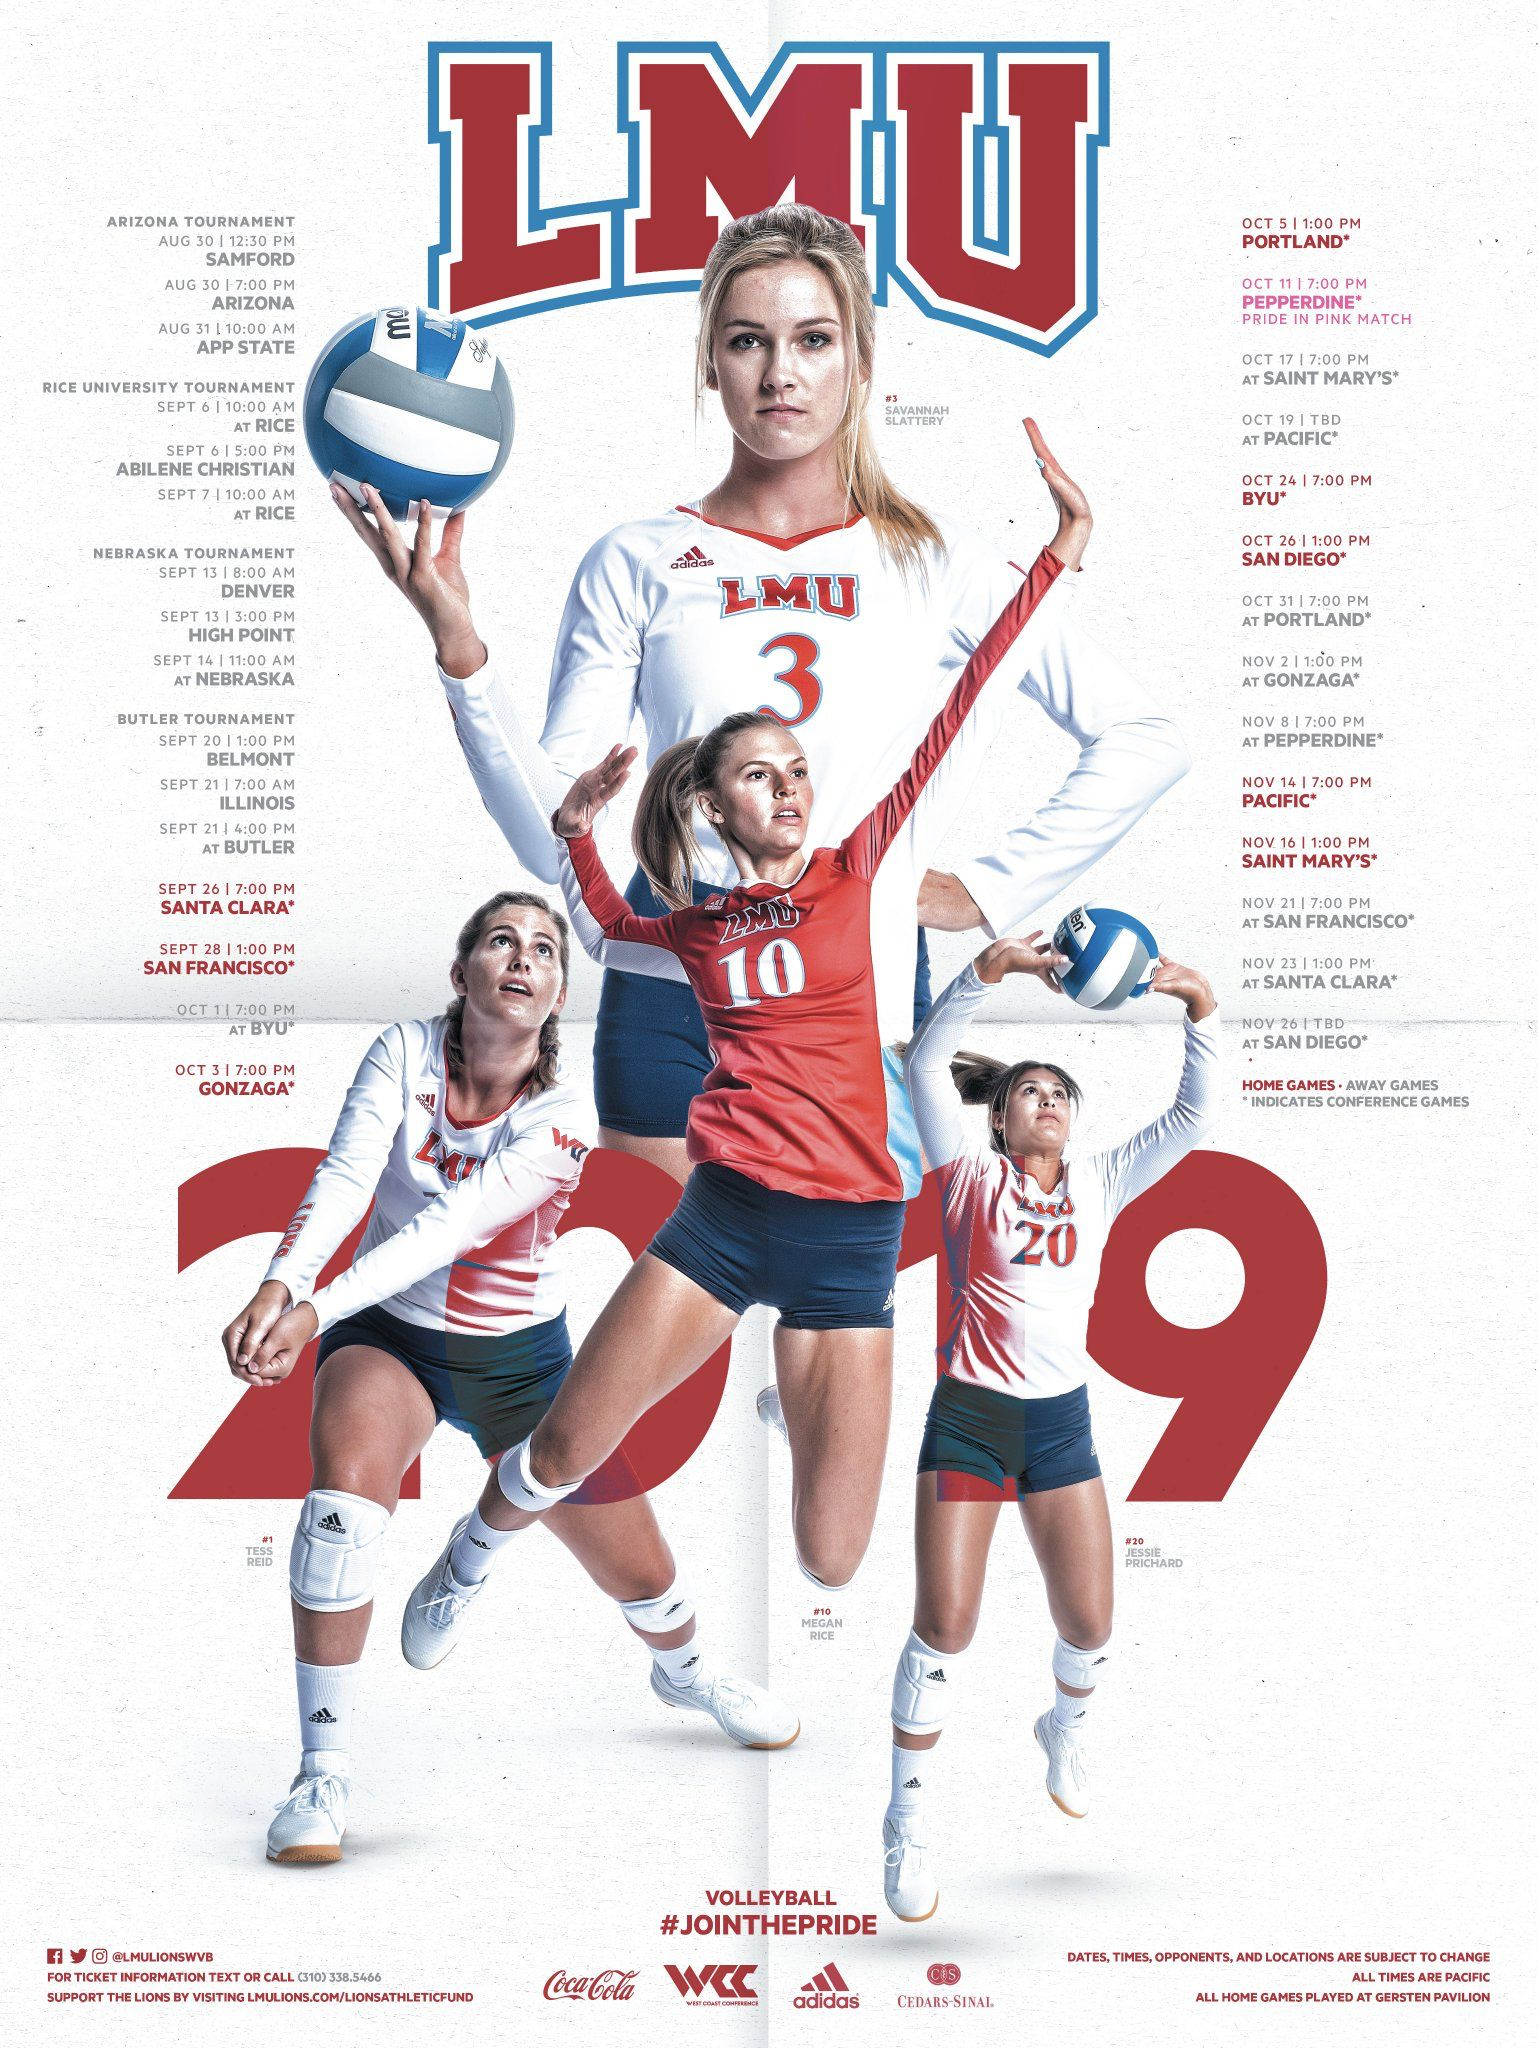 Pin By Christopher Munoz On Sports Design Sports Graphic Design Sports Design Sport Volleyball